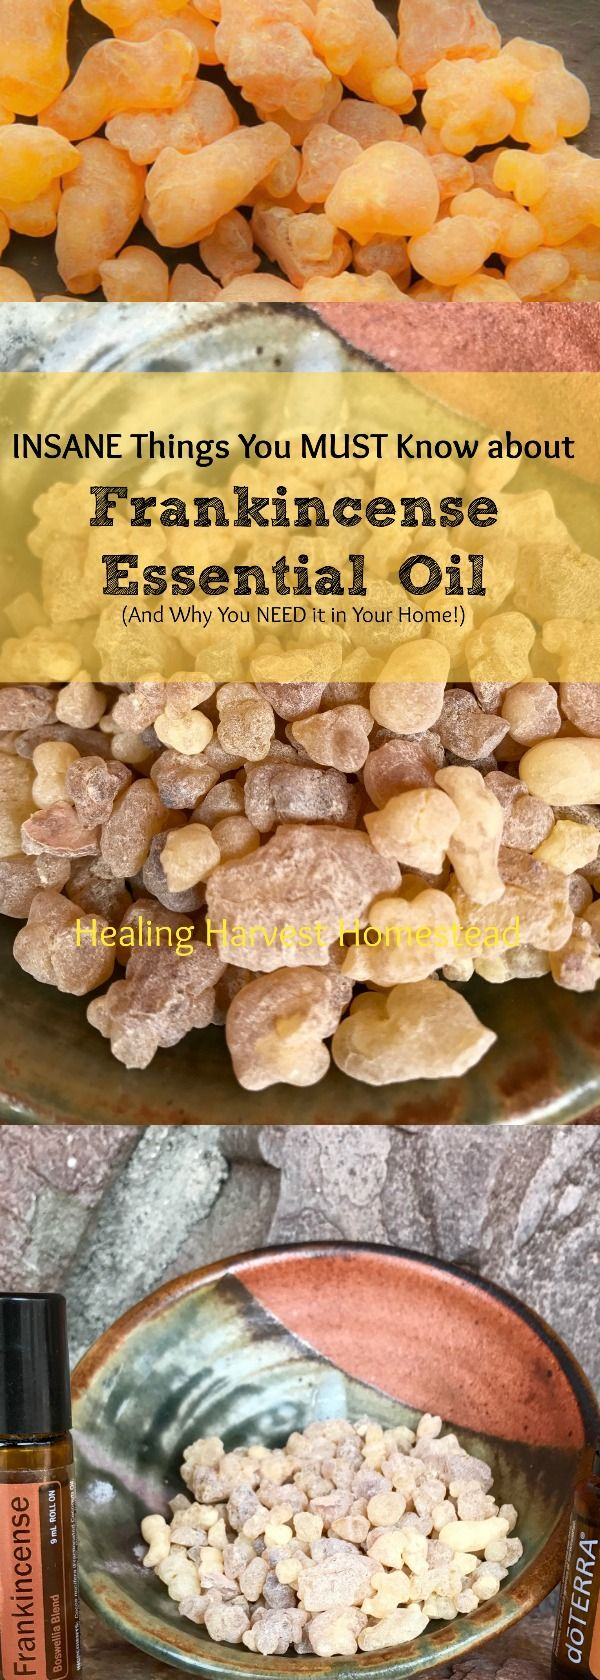 Frankincense Essential Oil is one of the most amazing essential oils out there, and you NEED it in your home! Here's how you can use Frankincense Oil and why you NEED to!